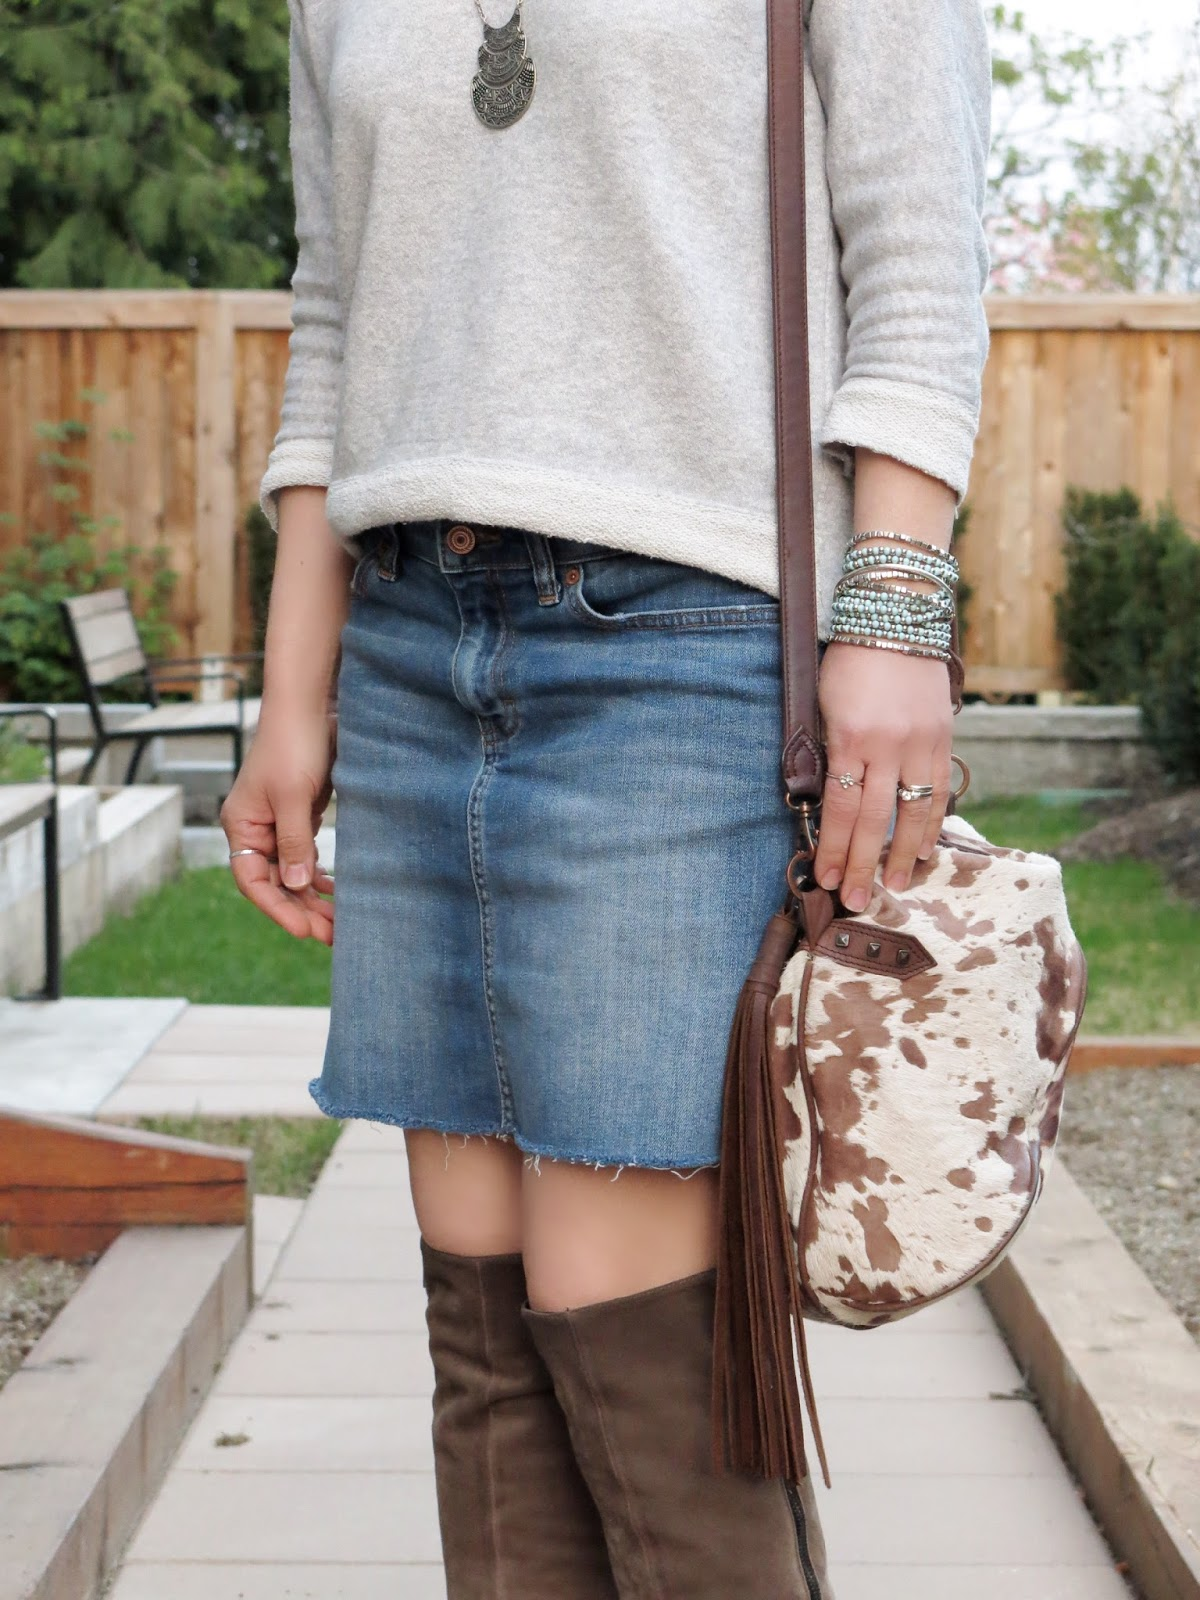 raw-hemmed denim skirt, sweatshirt, suede knee boots, and pony-hair bag